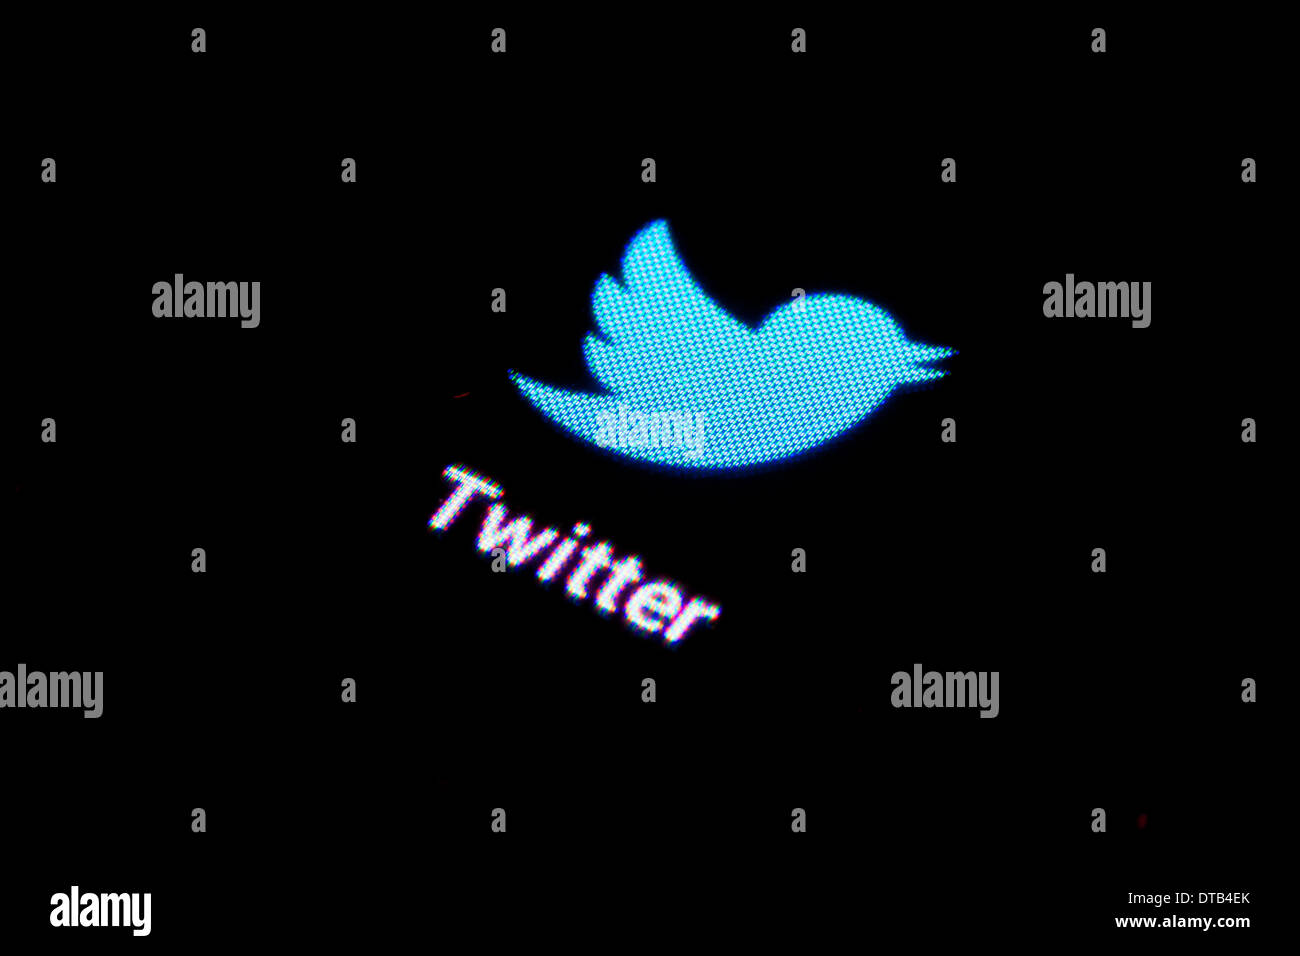 Berlin, Germany, App icon for Twitter on a smartphone - Stock Image